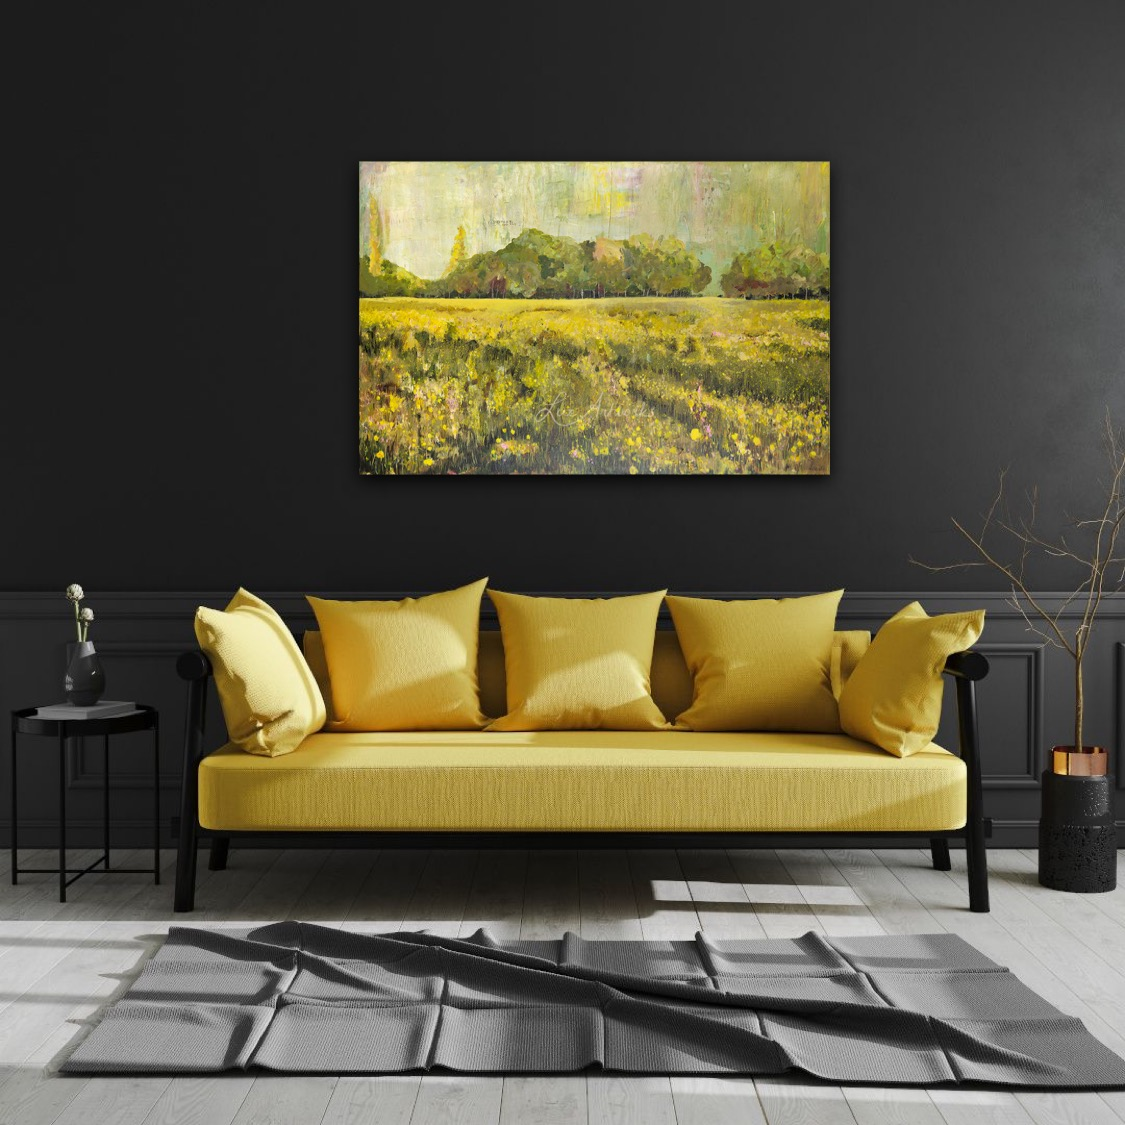 Dune Landscape by Marloes Bloedjes - on the wall